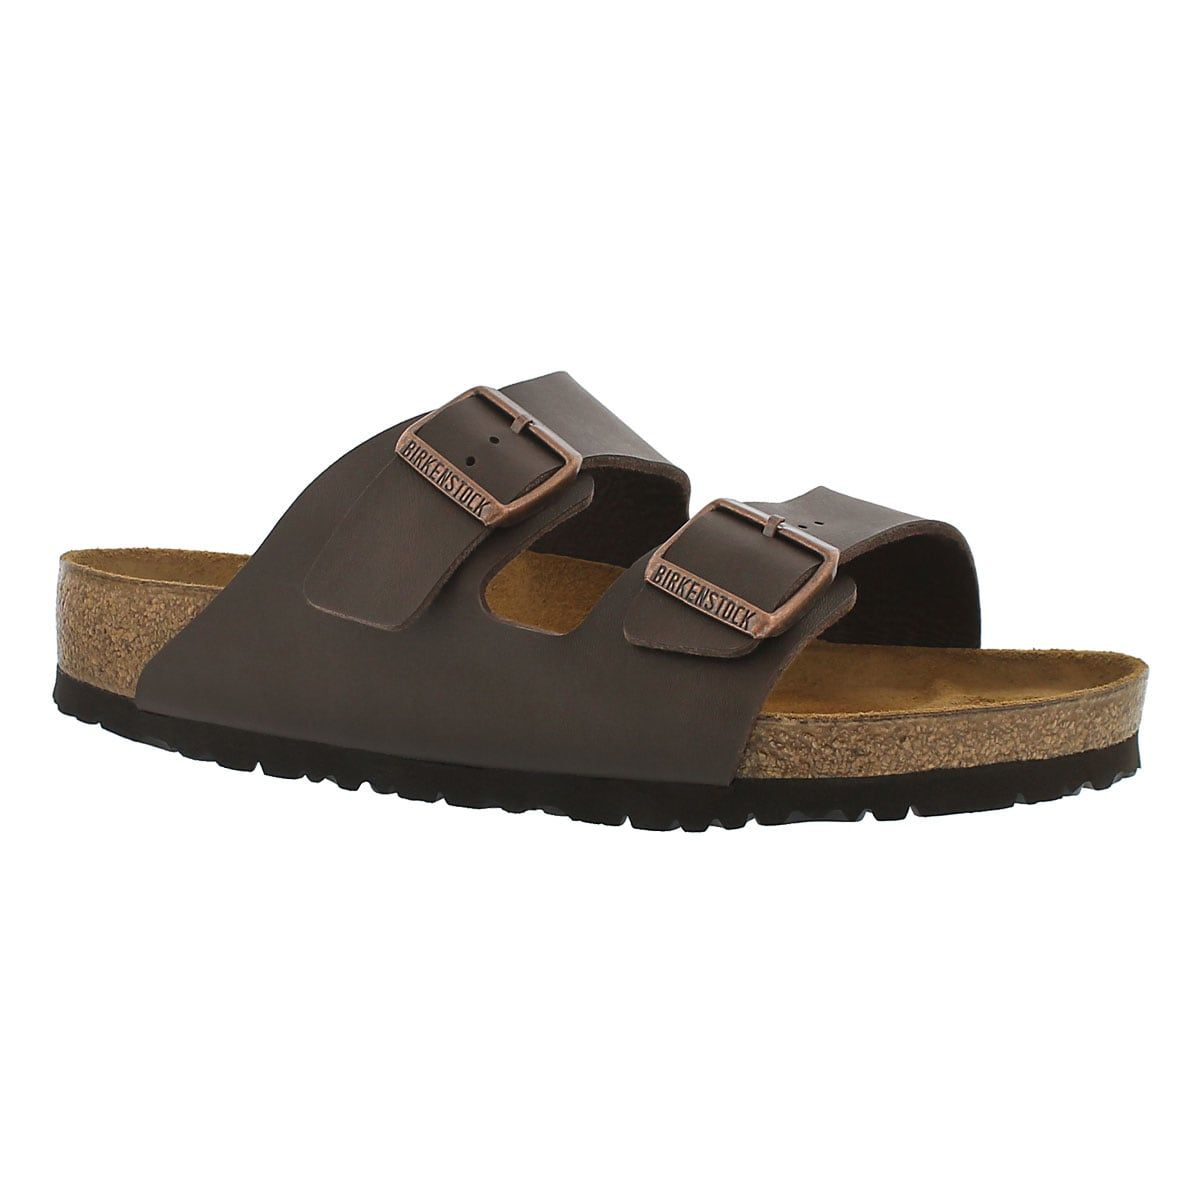 e0699ab9359b Women s ARIZONA dark brown 2 strap sandals